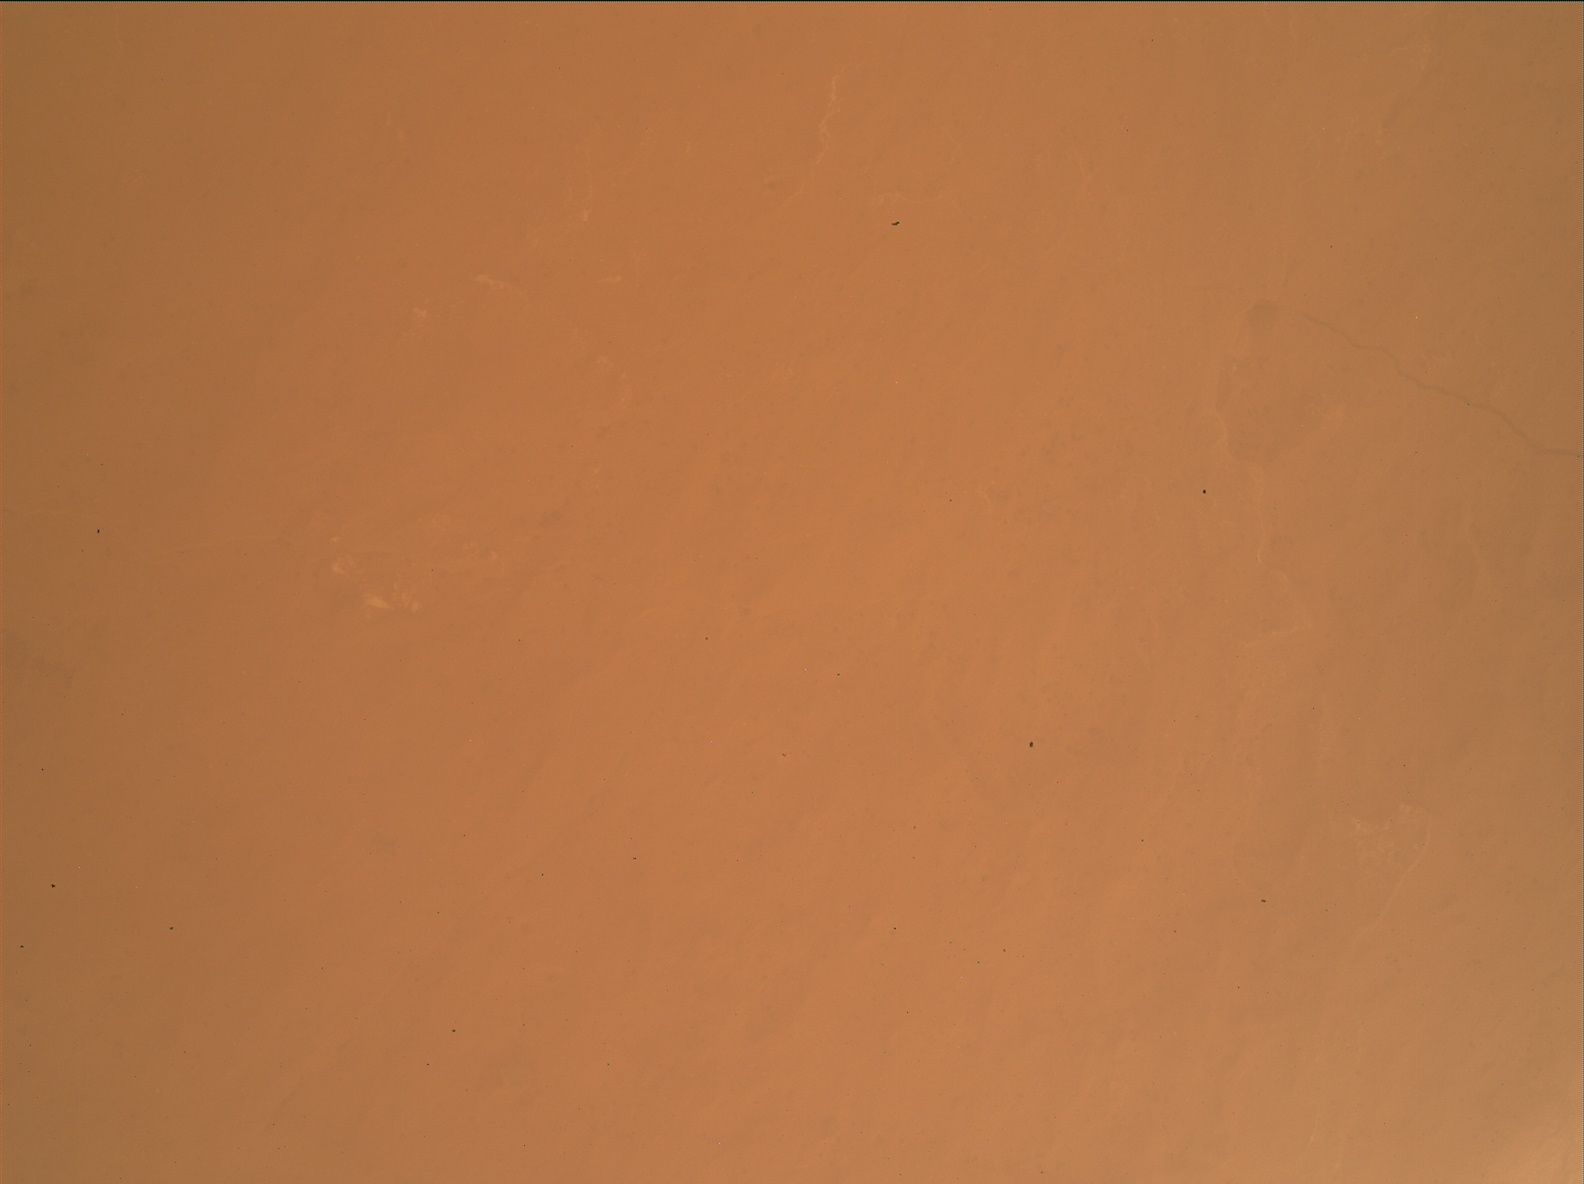 Nasa's Mars rover Curiosity acquired this image using its Mars Hand Lens Imager (MAHLI) on Sol 1630